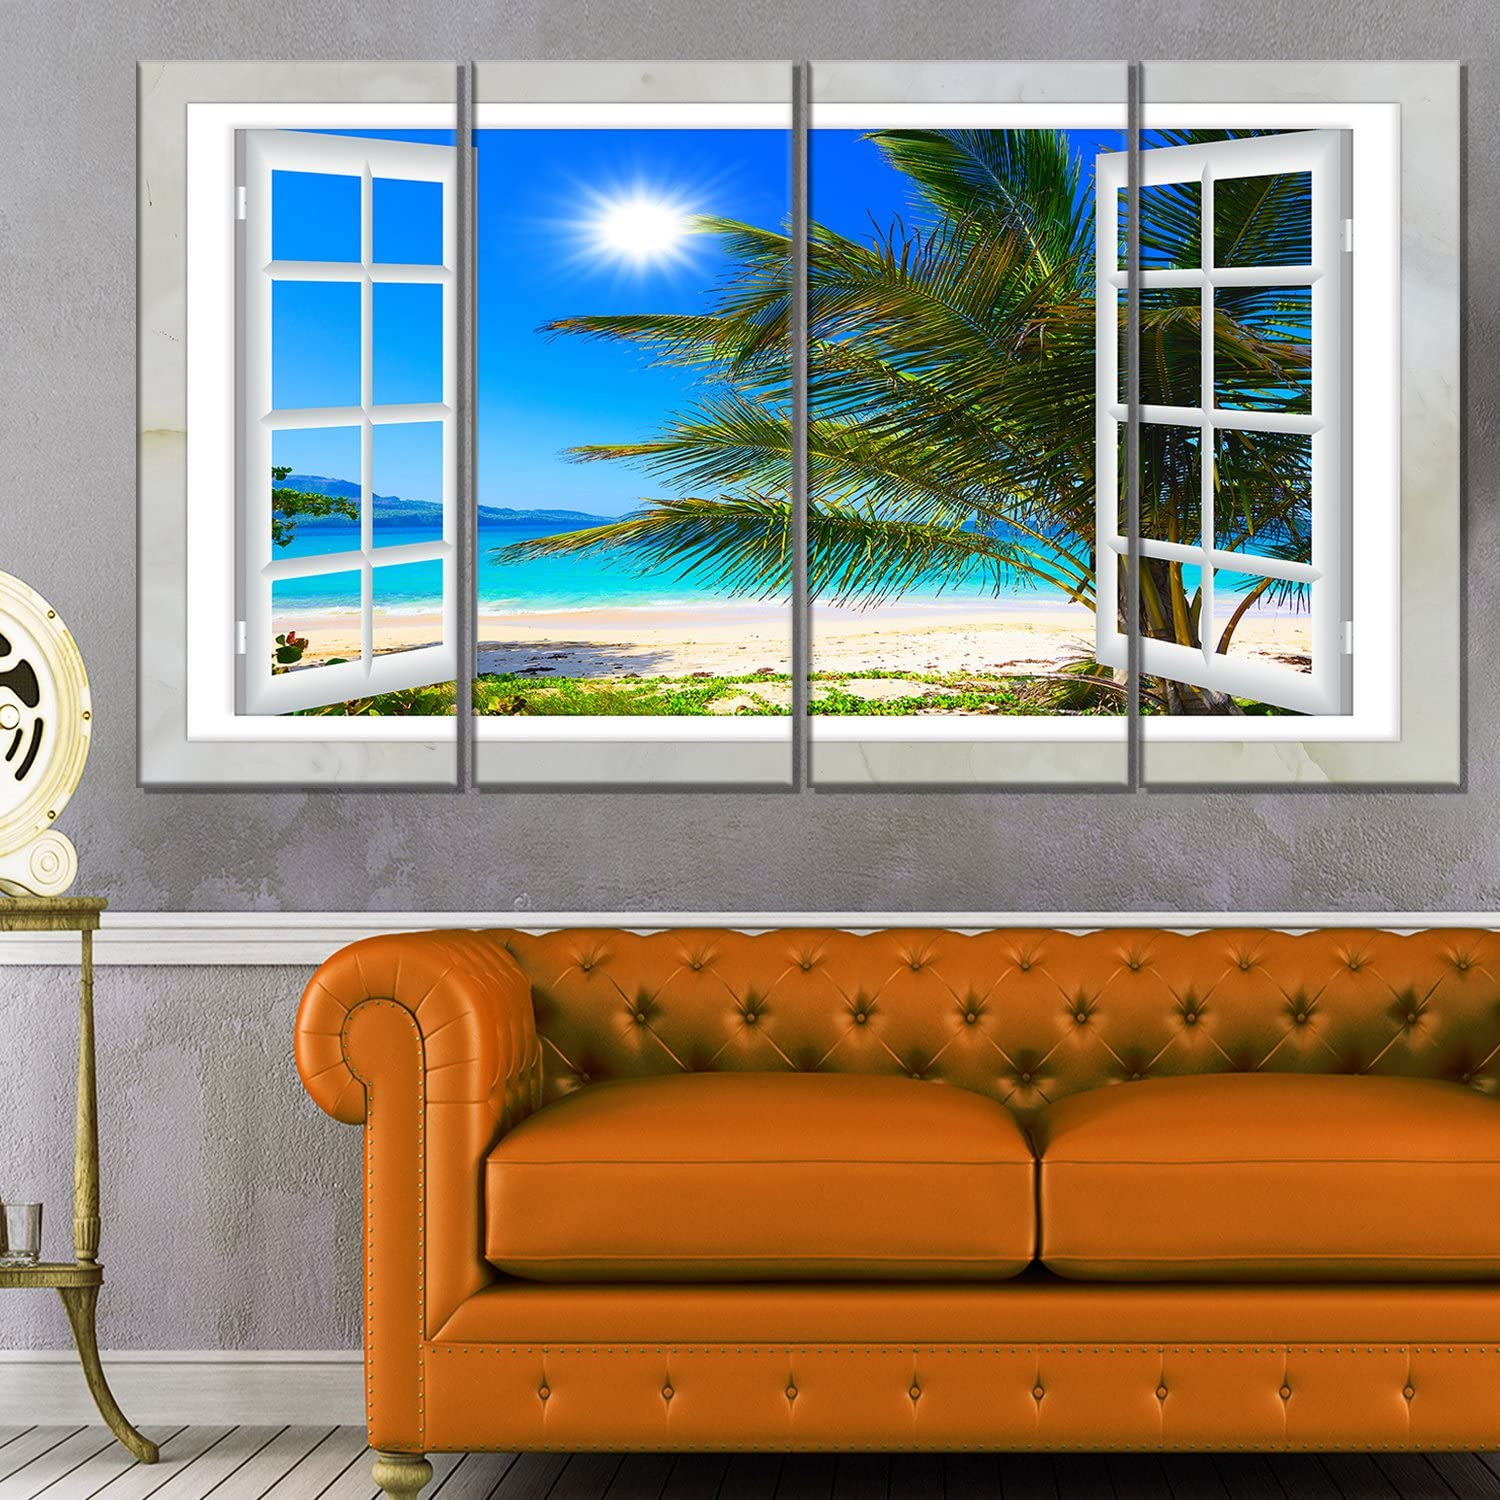 Designart Window Open to Beach with shopping Seashore Palm Large Extra Ca Courier shipping free shipping